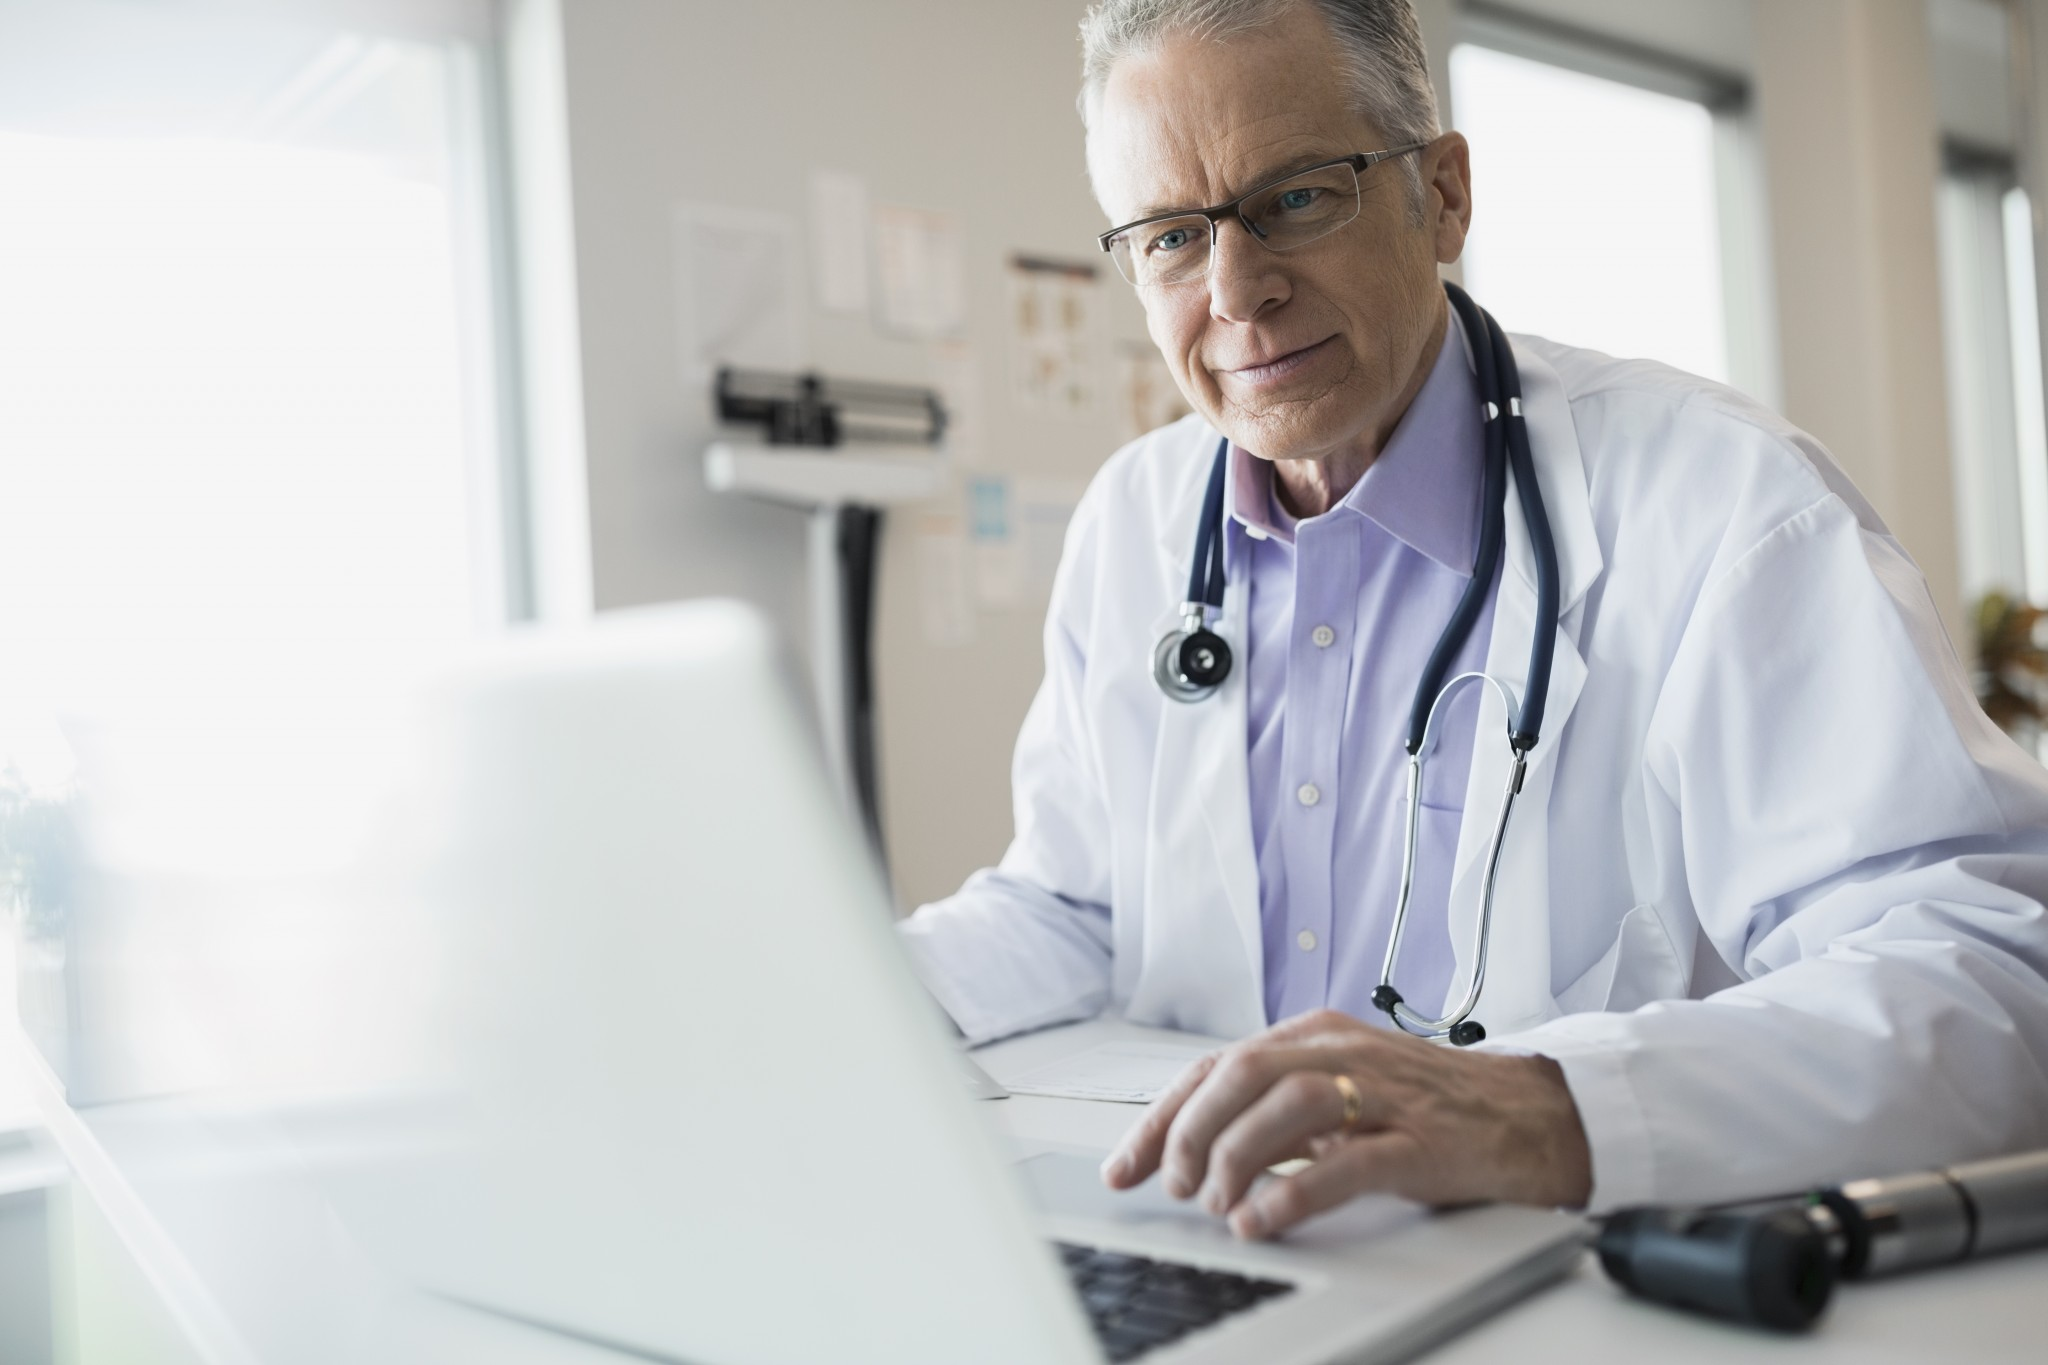 A doctor using laptop